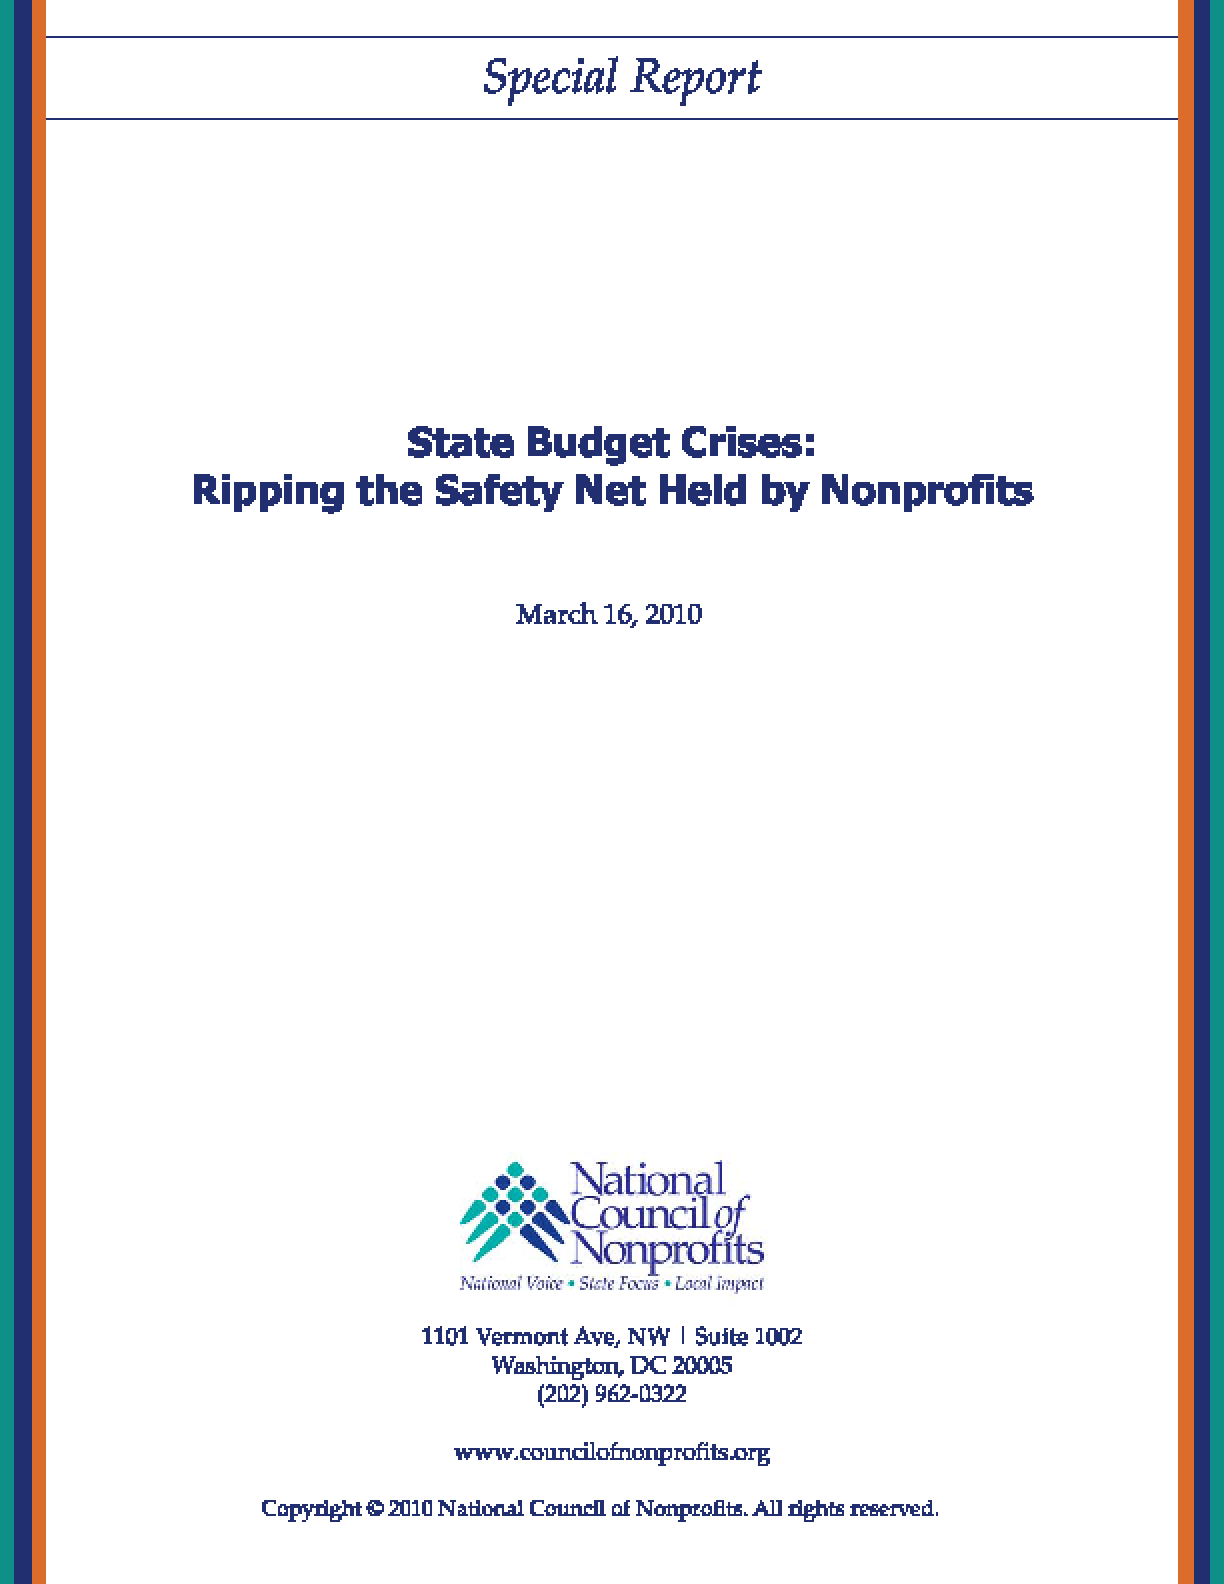 State Budget Crises: Ripping the Safety Net Held by Nonprofits